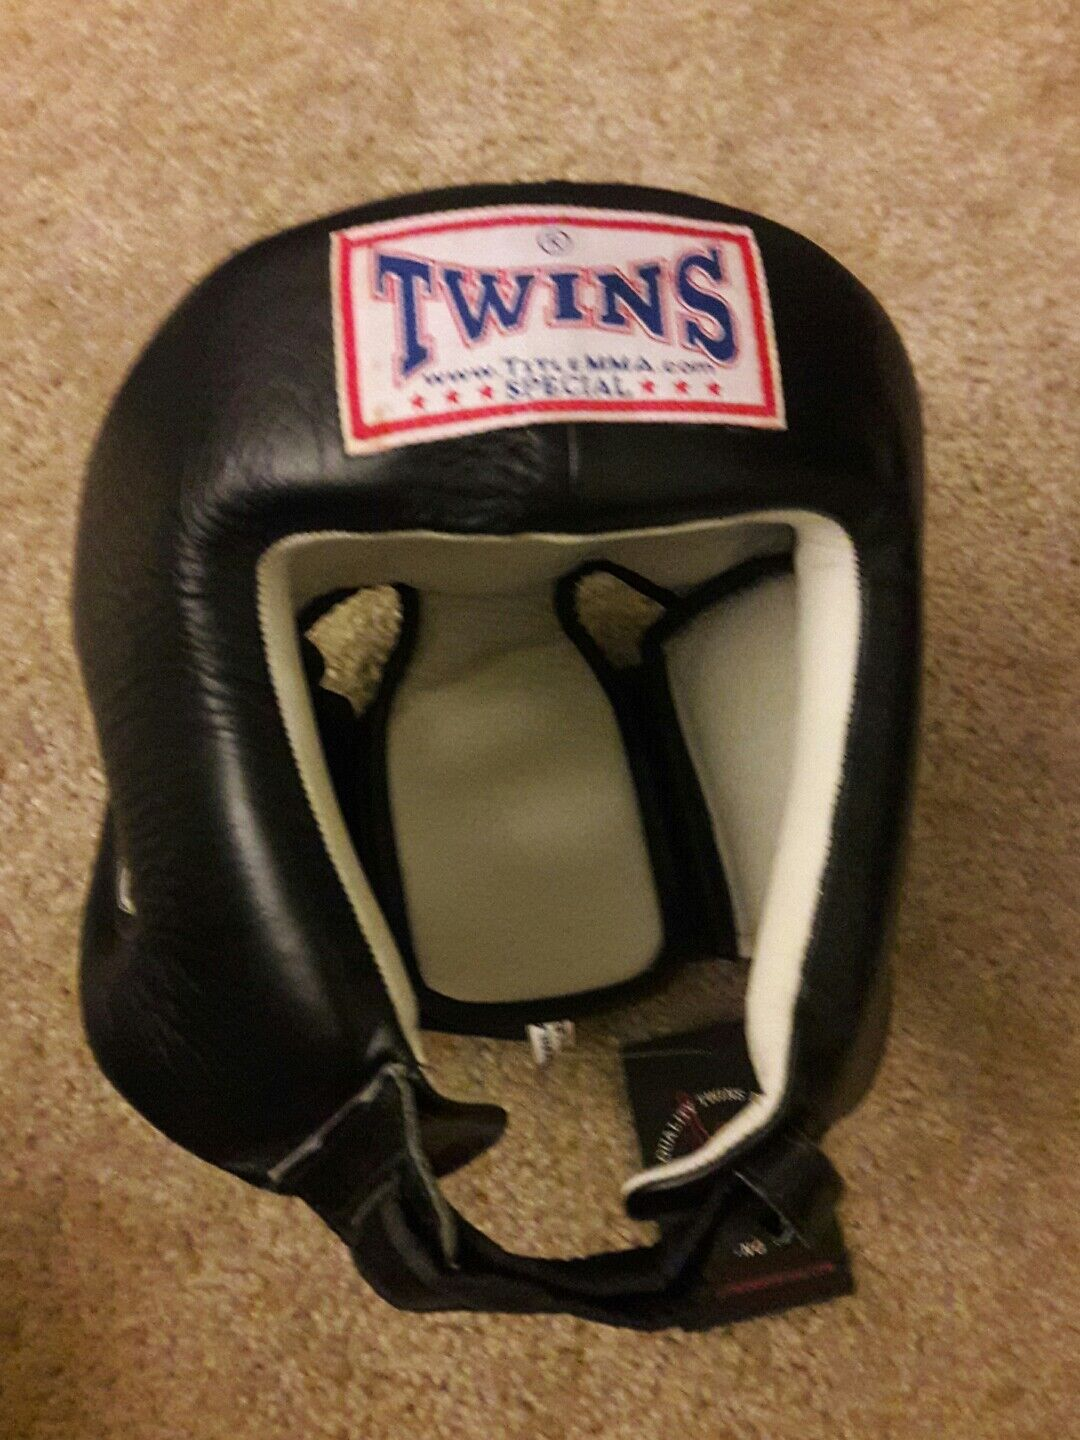 TWINS  Specials Head  Gear HGL-4, Muay Thai  for your style of play at the cheapest prices